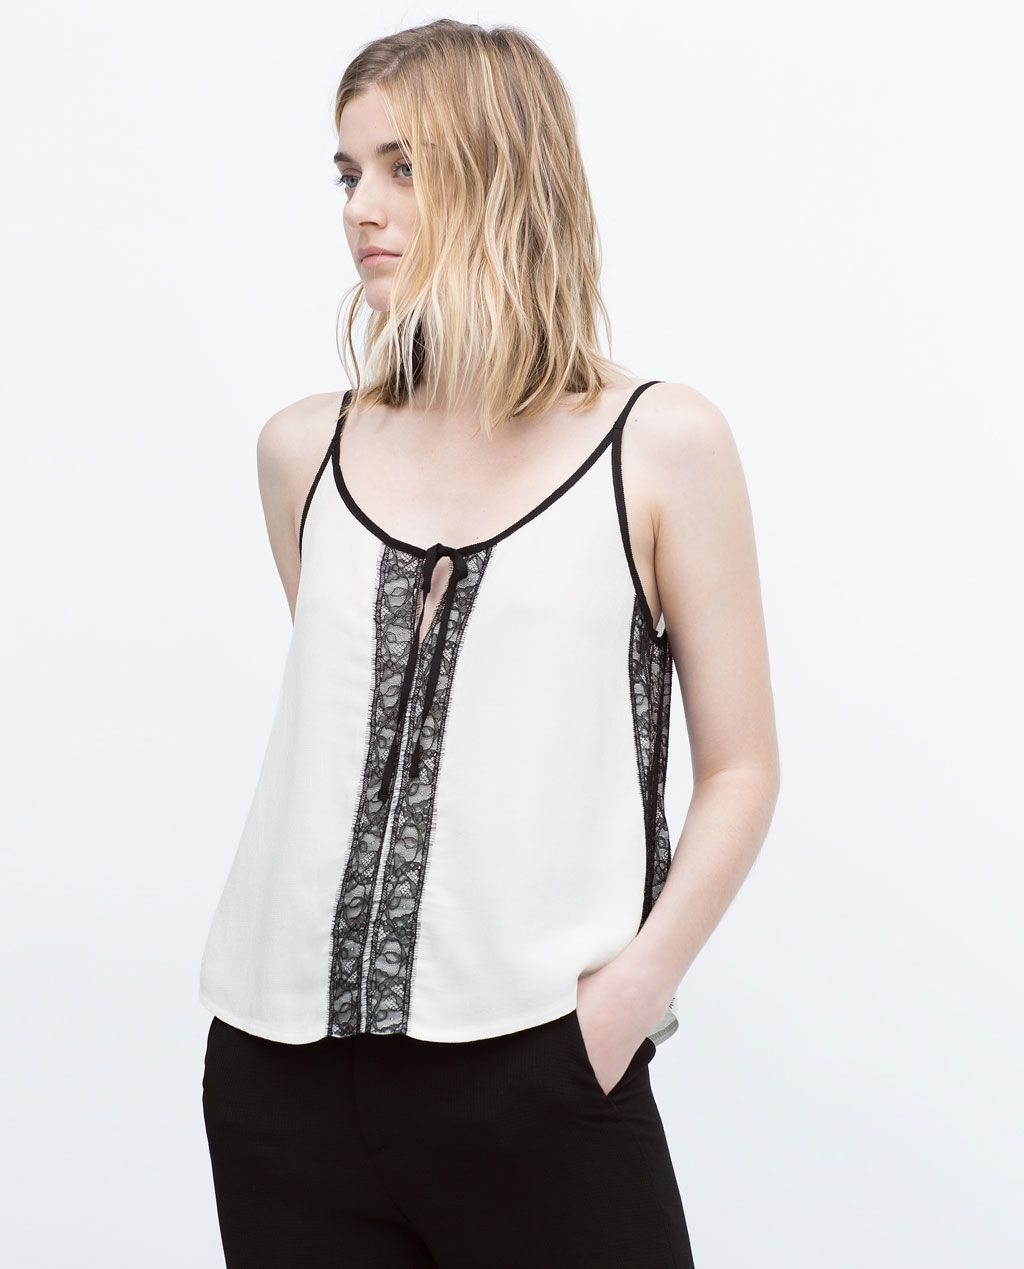 Zara black t shirt india - Top With Lace Detailing View All T Shirts Woman Zara India